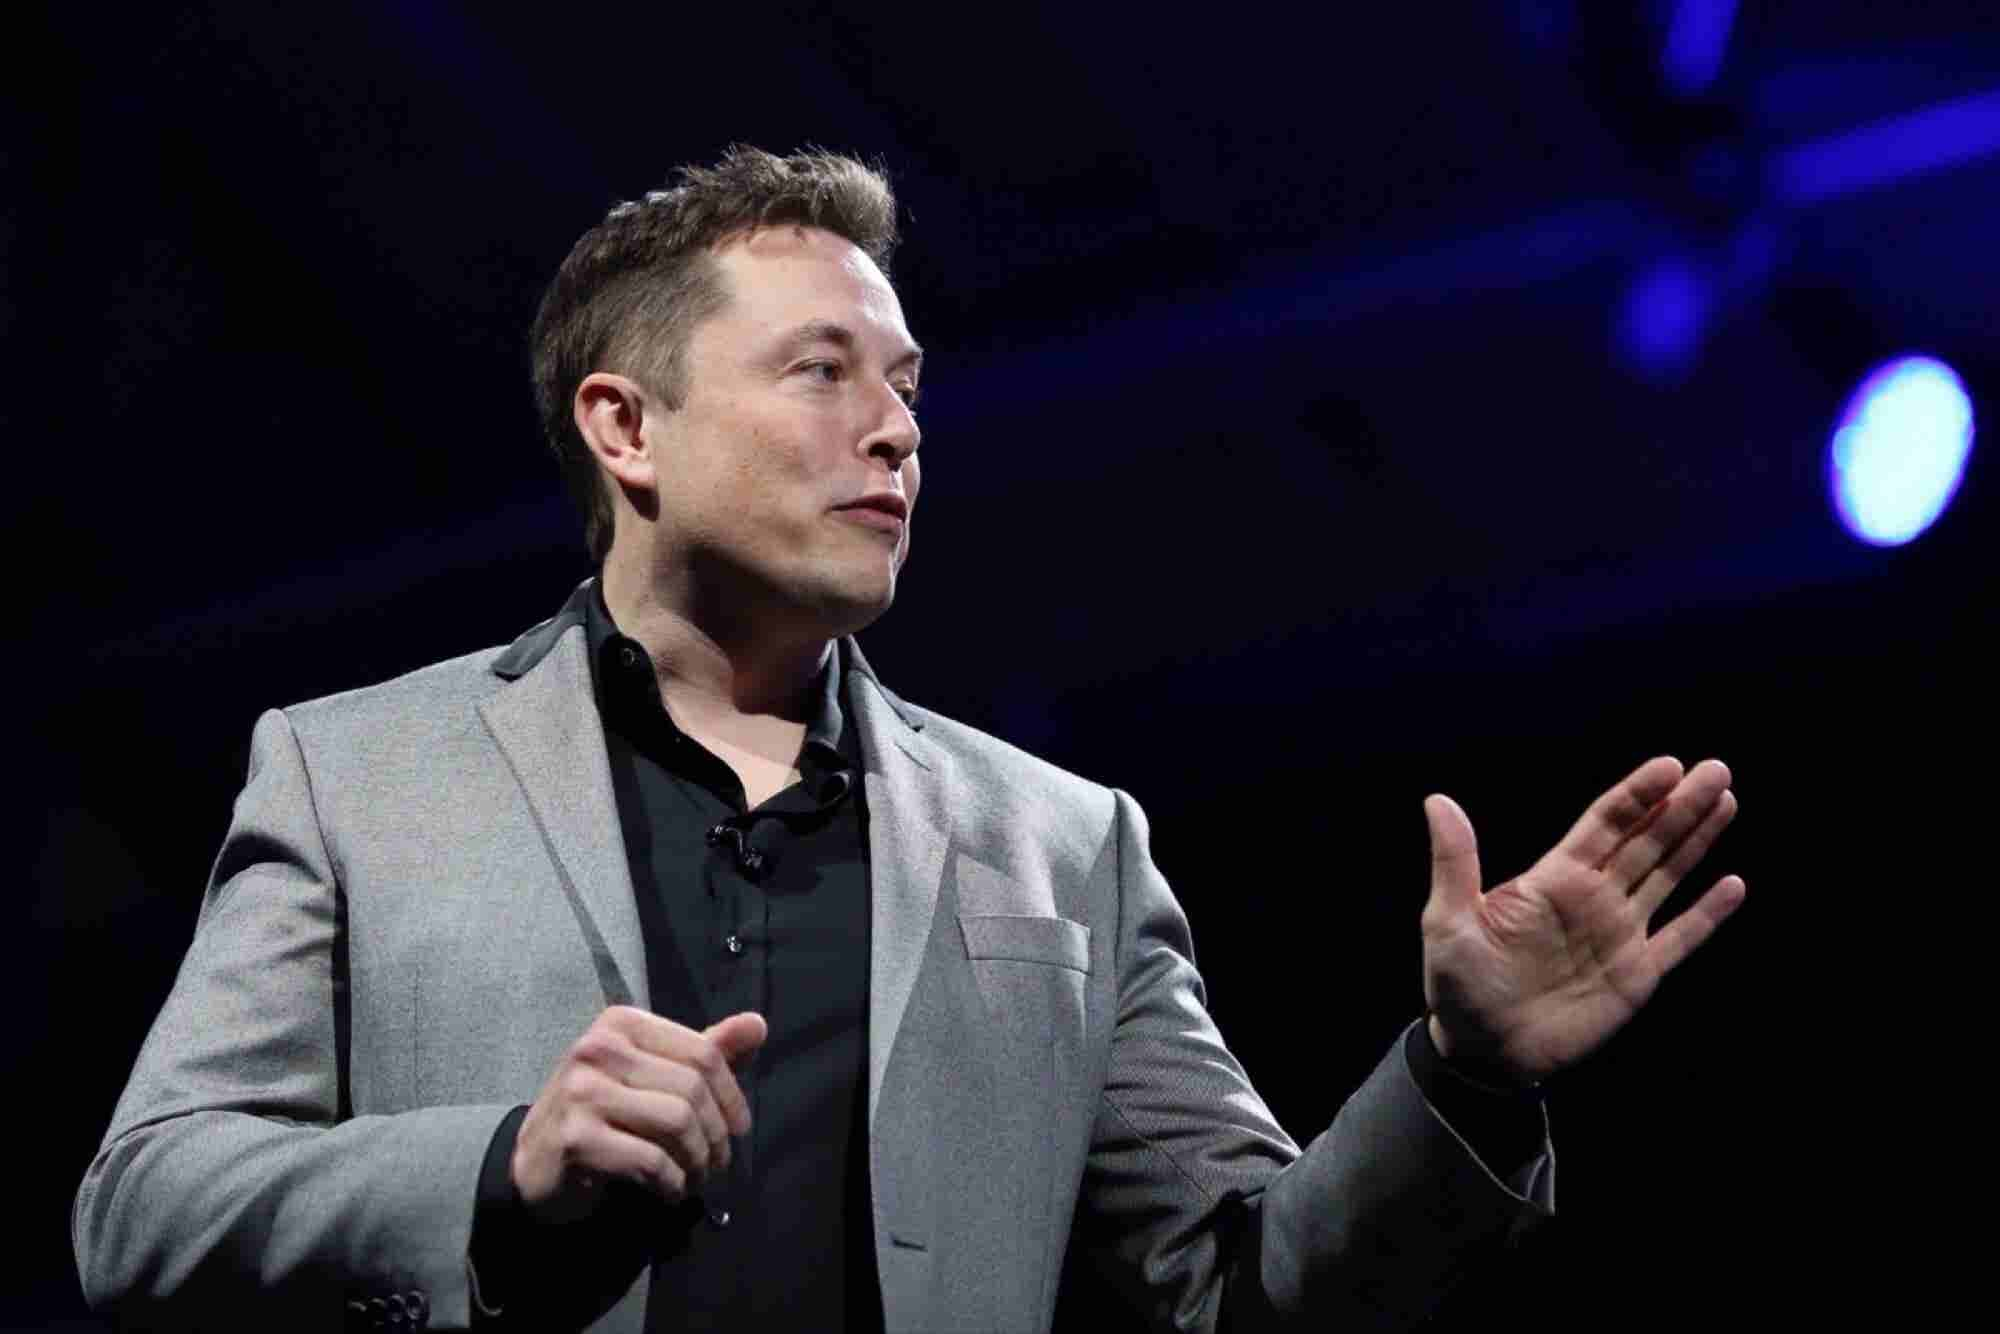 Elon Musk's Name Can Get You Locked Out of Twitter, and 26 Other Weird Things We've Learned About the SpaceX and Tesla CEO